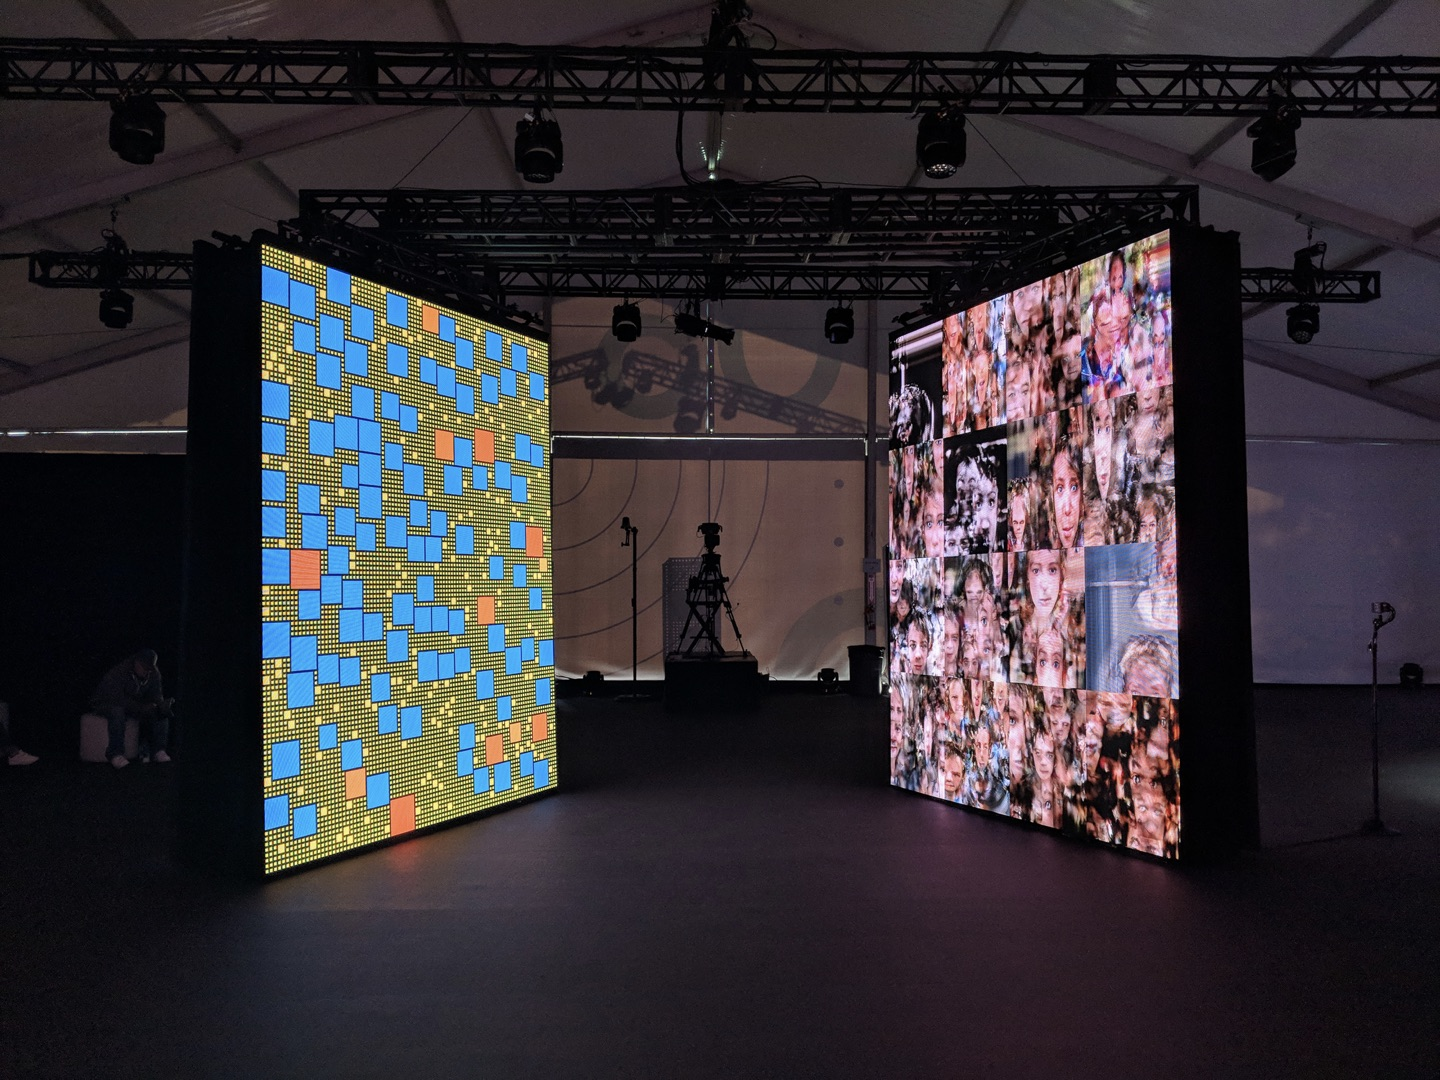 Two large LED screens, one with a colorful block pattern, another with odd faces.